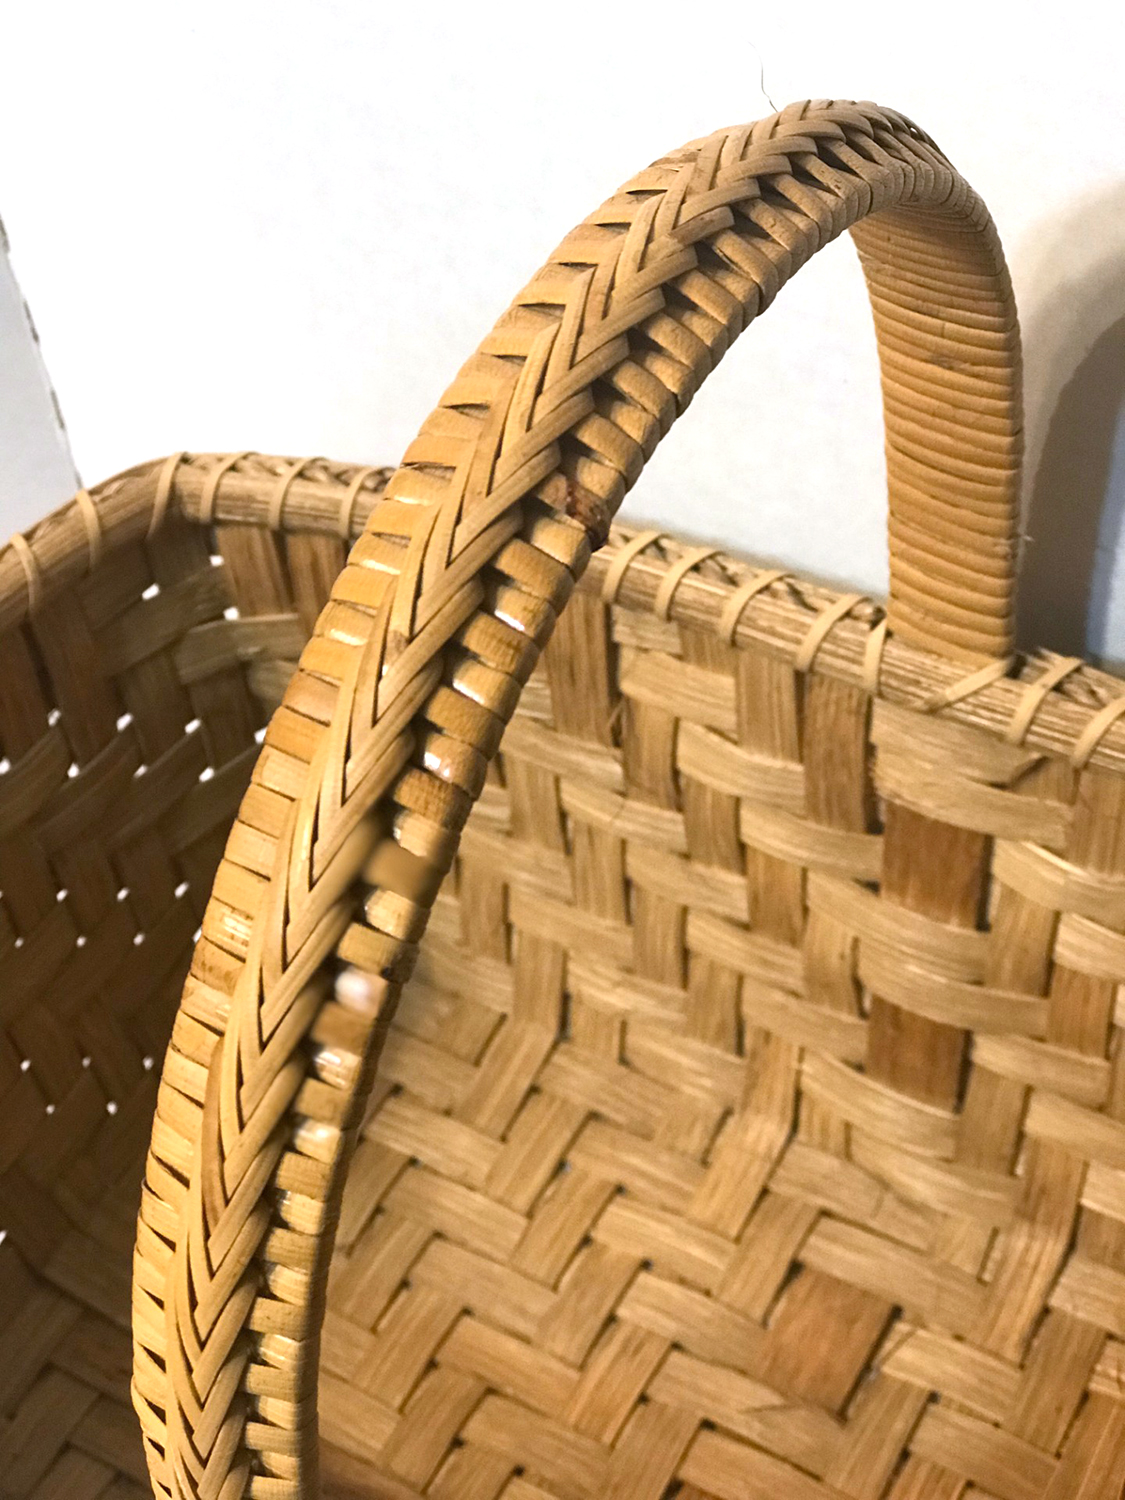 advanced-basket-weaving-06.jpg